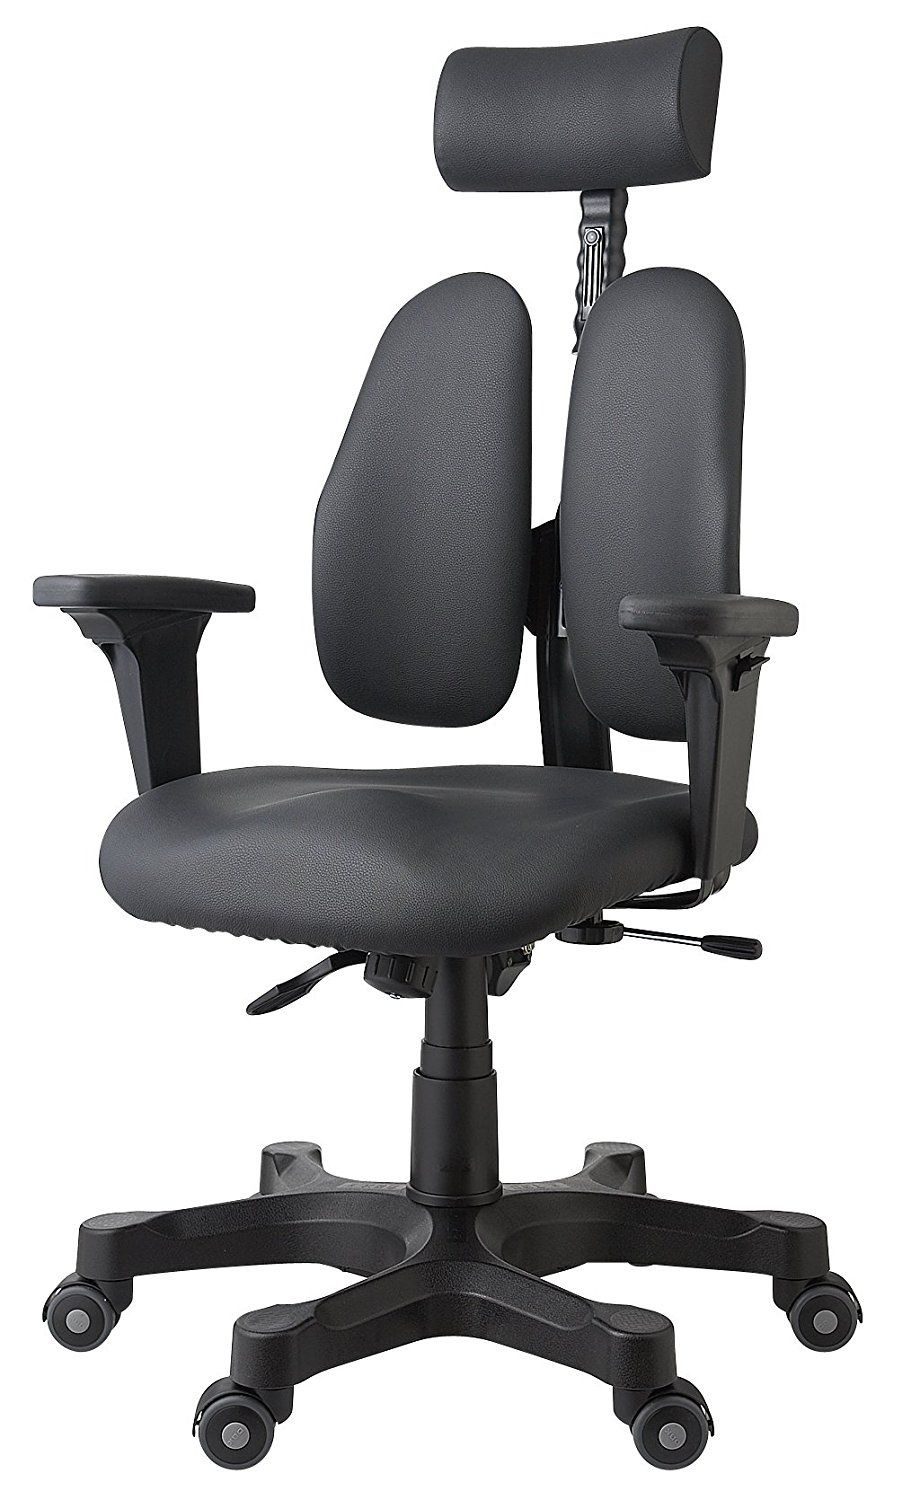 Terrific Pin By Erlangfahresi On Desk Office Design Best Ergonomic Onthecornerstone Fun Painted Chair Ideas Images Onthecornerstoneorg